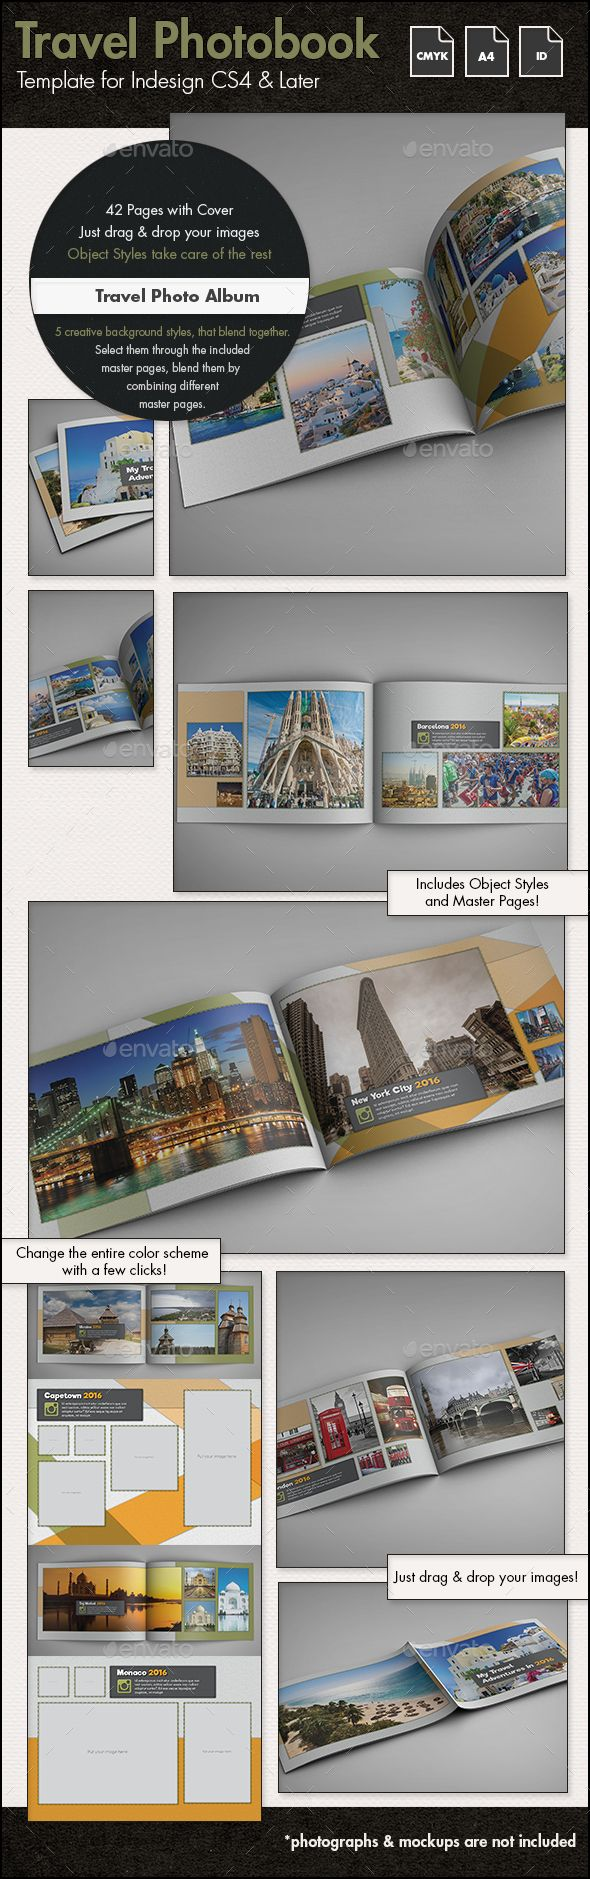 Travel Photo Album Template g2 - A4 Landscape | Landscaping, Album ...